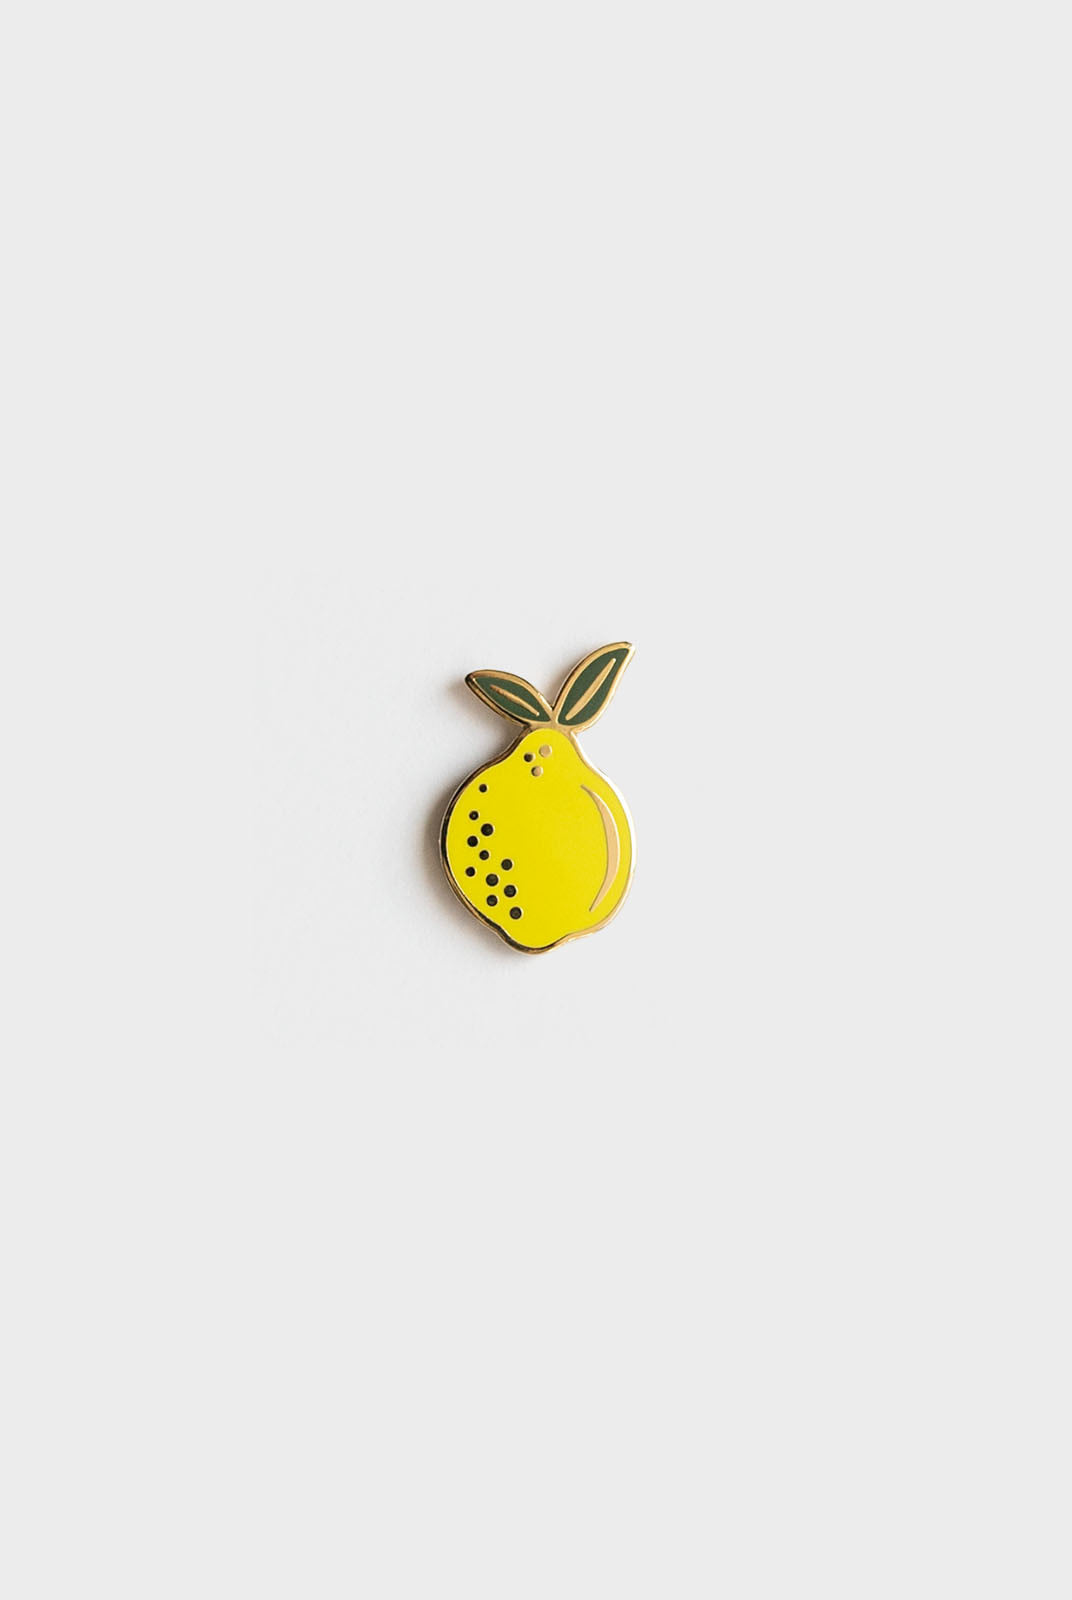 Lemon Enamel Pin, Rifle Paper Co.